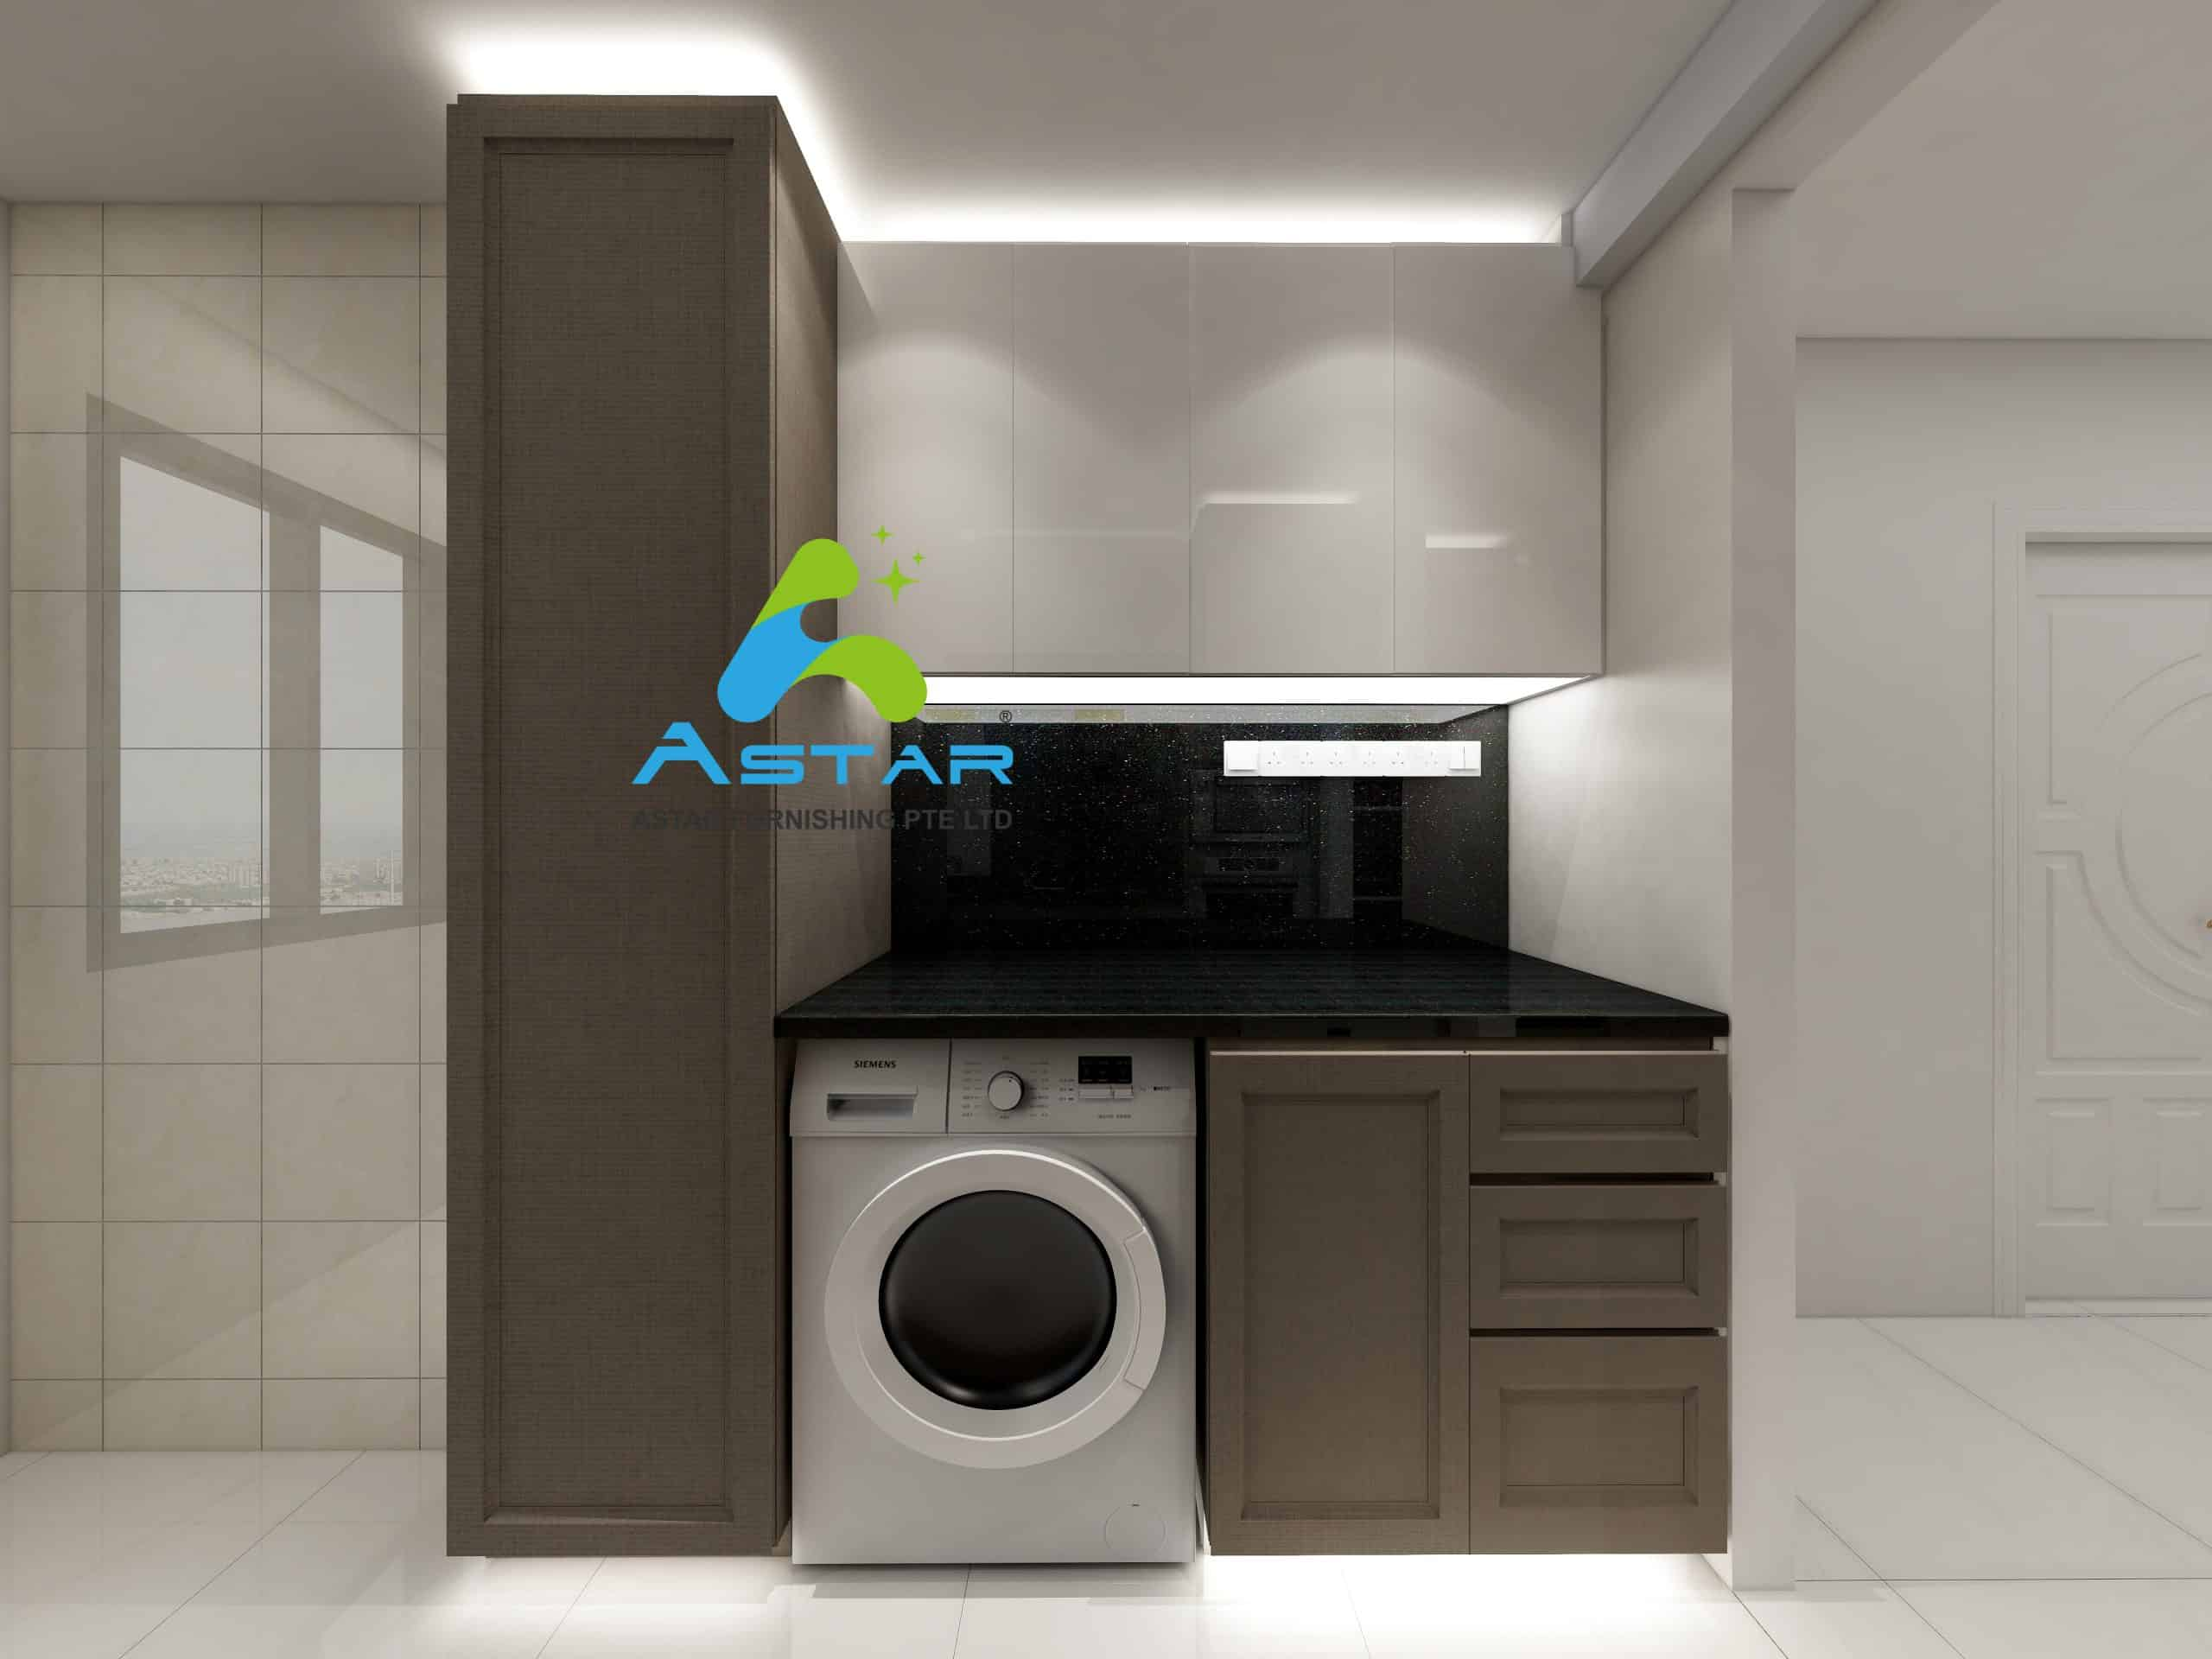 a star furnishing aluminium projects 20. Blk 830 Woodlands st 83 026 scaled